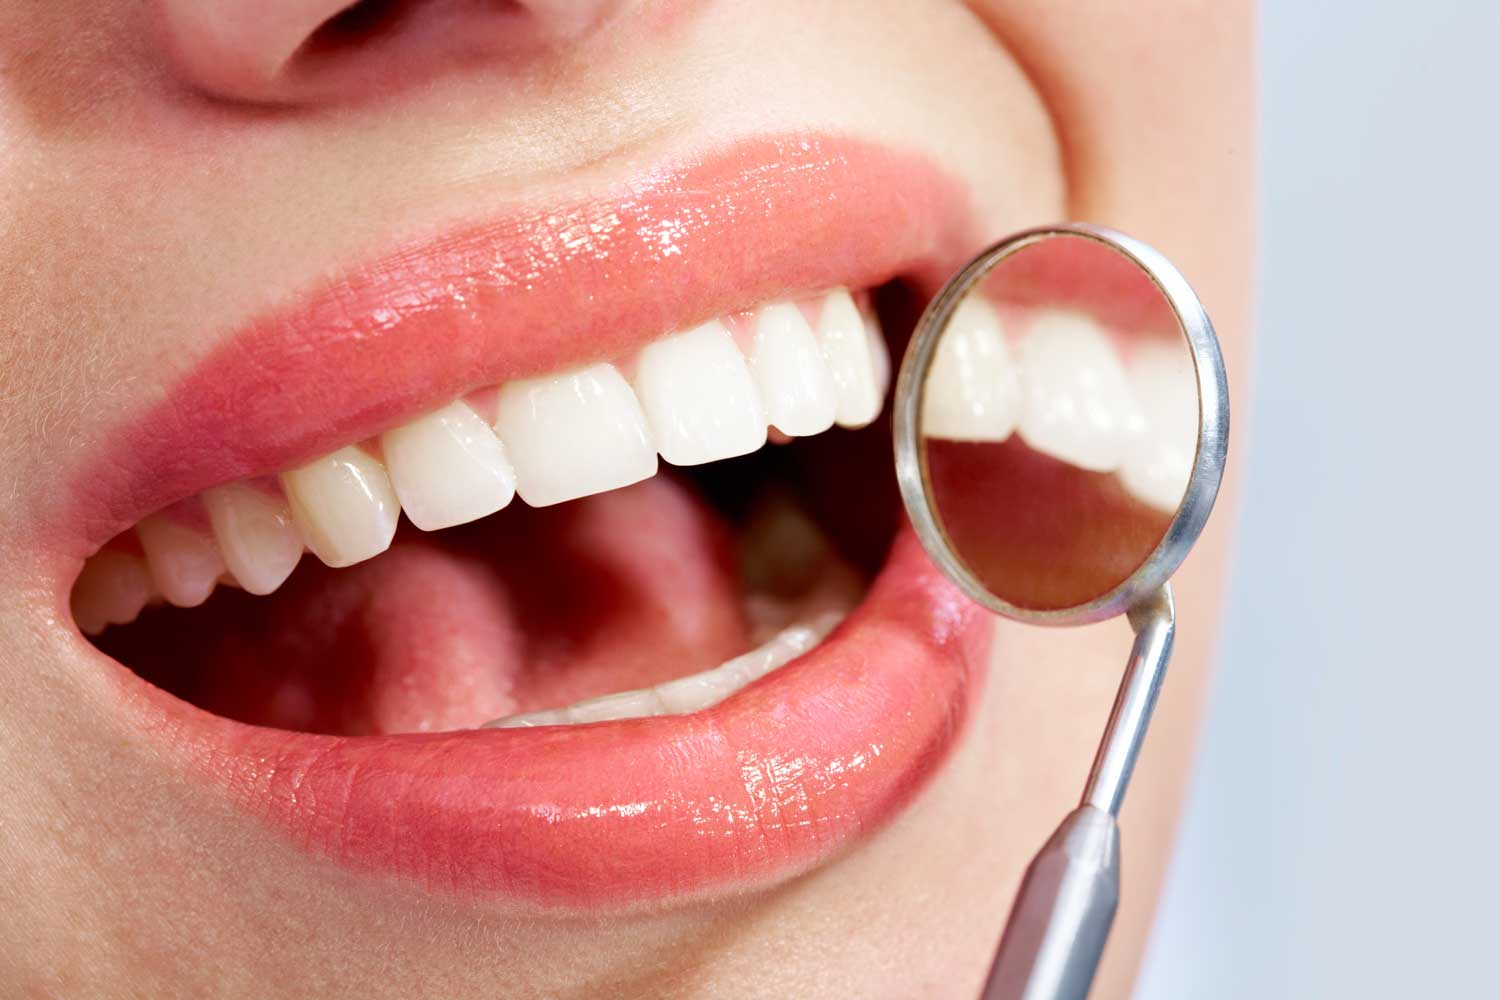 Who-is-more-susceptible-to-needing-alternatives-to-a-root-canal-1.jpg